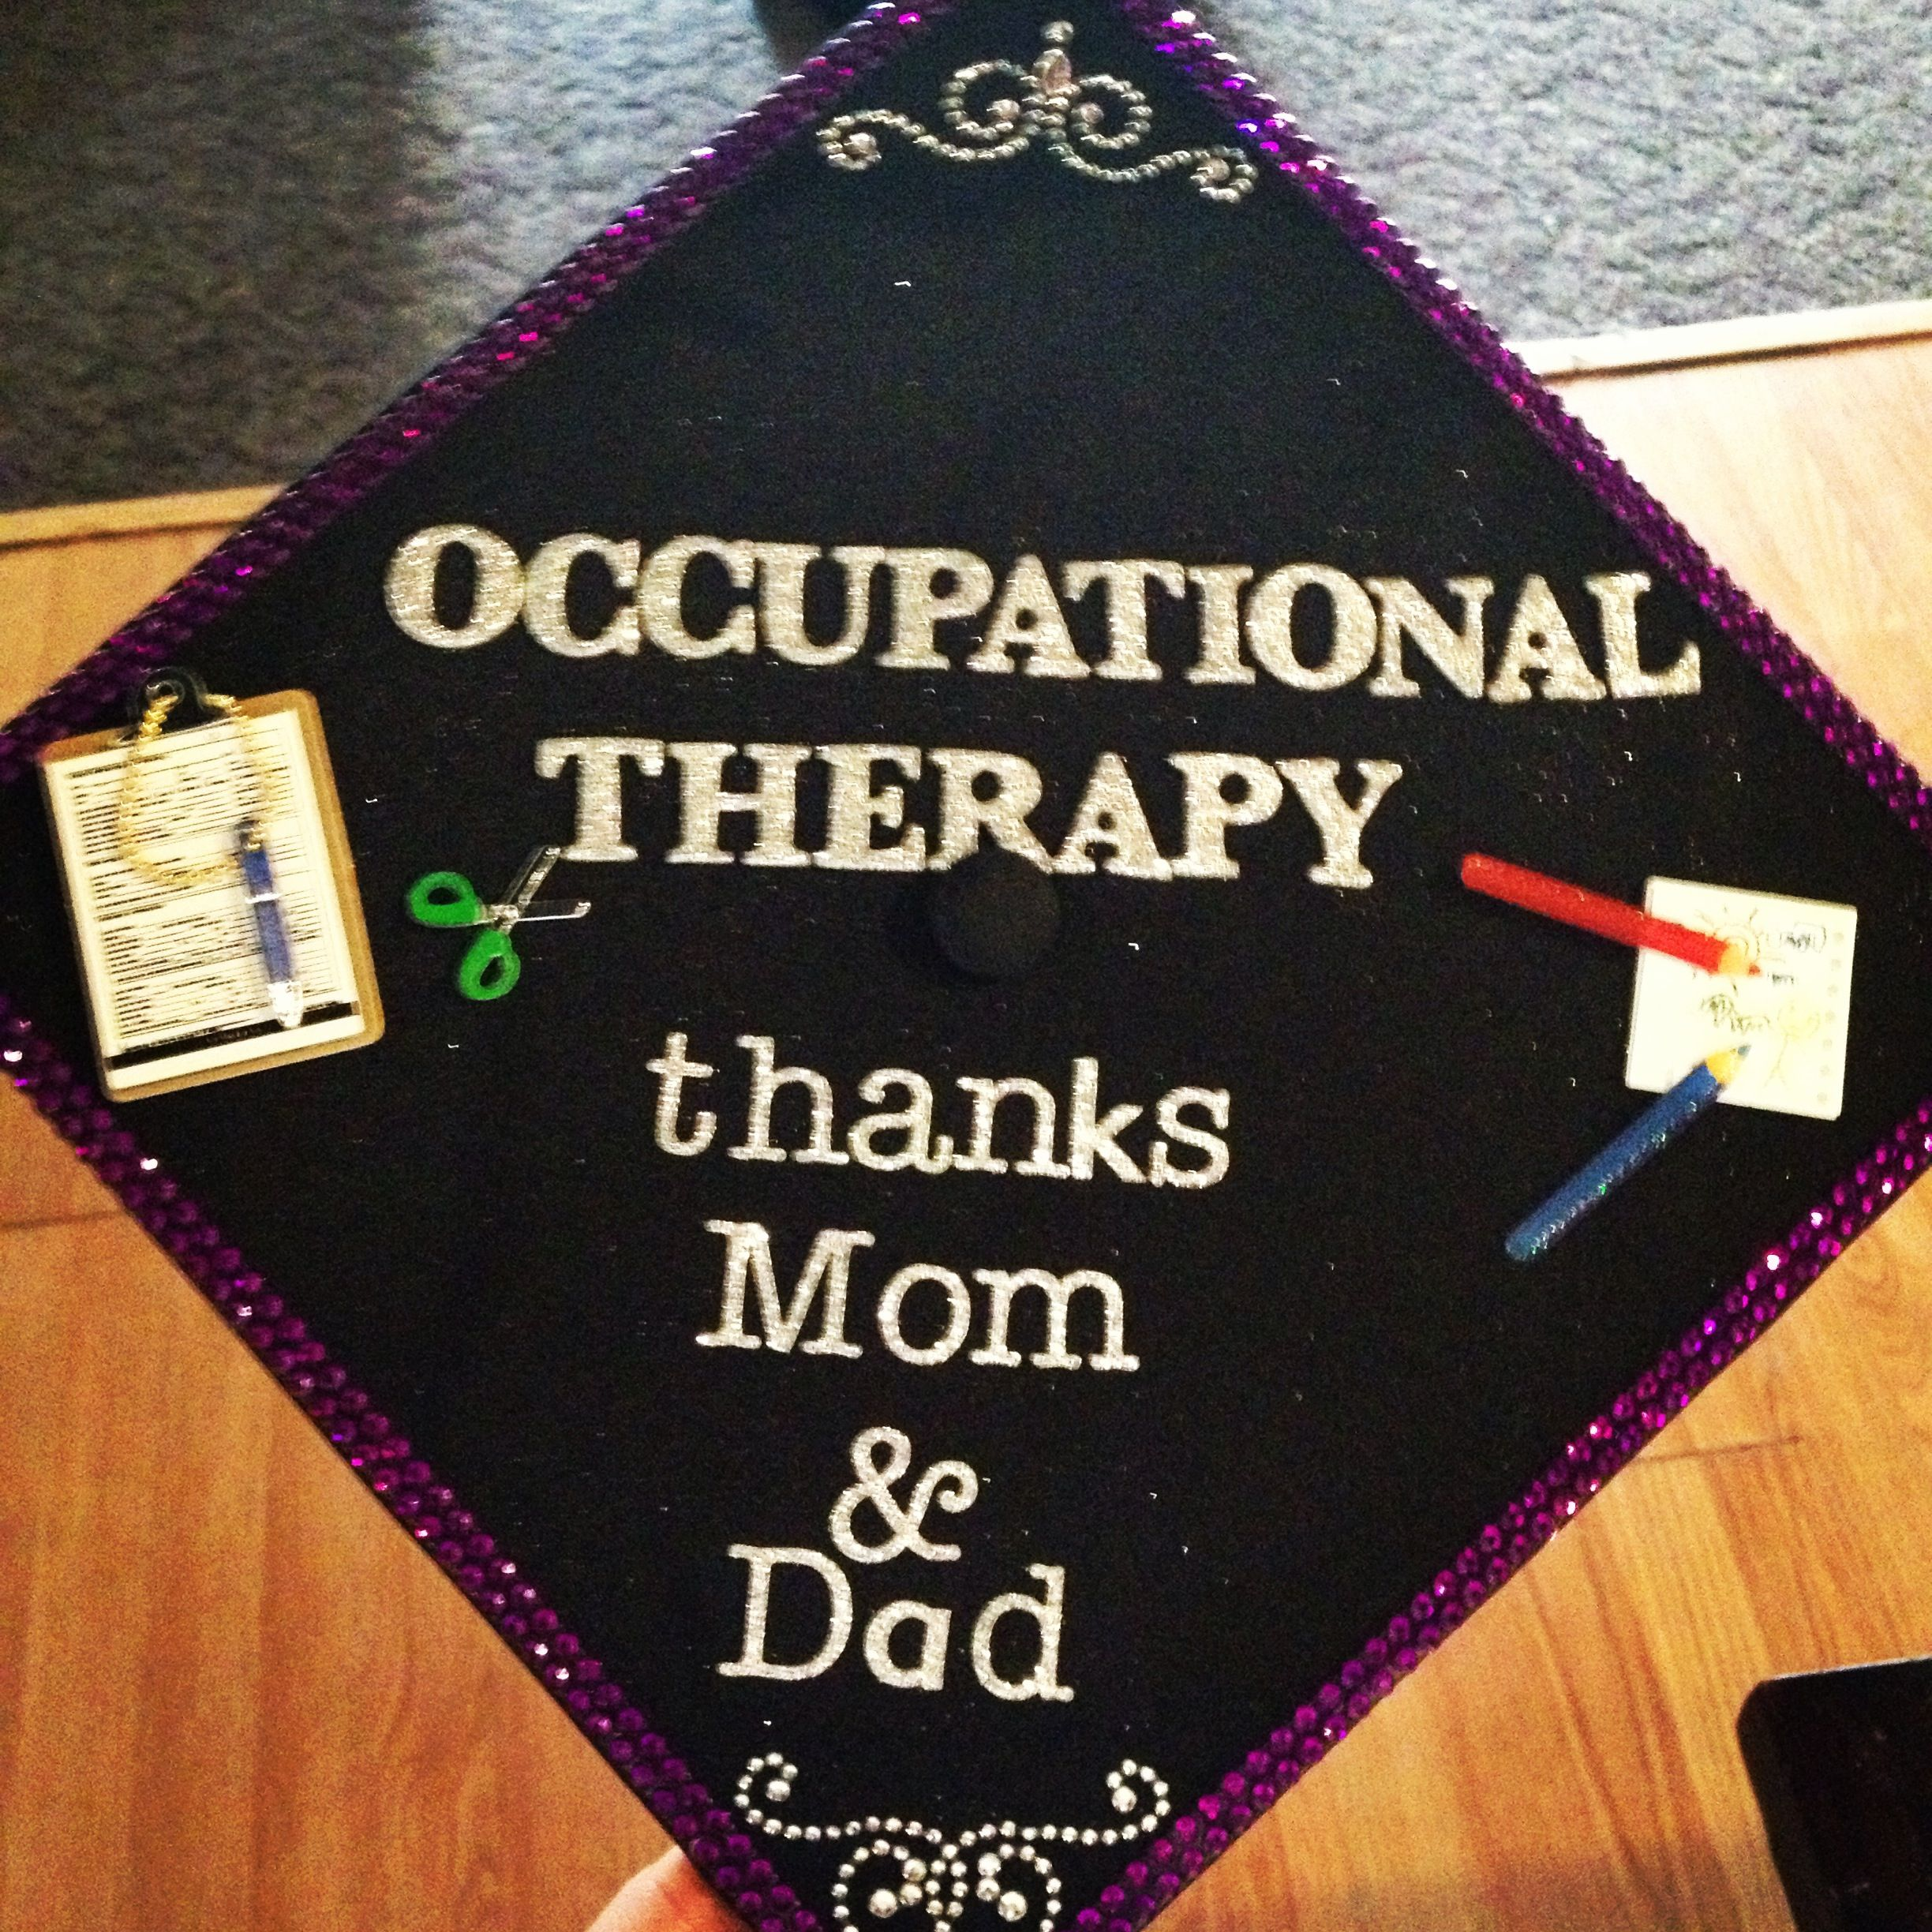 47501d7a398f39588afc171e03d8bba1 - How To Get A Masters Degree In Occupational Therapy